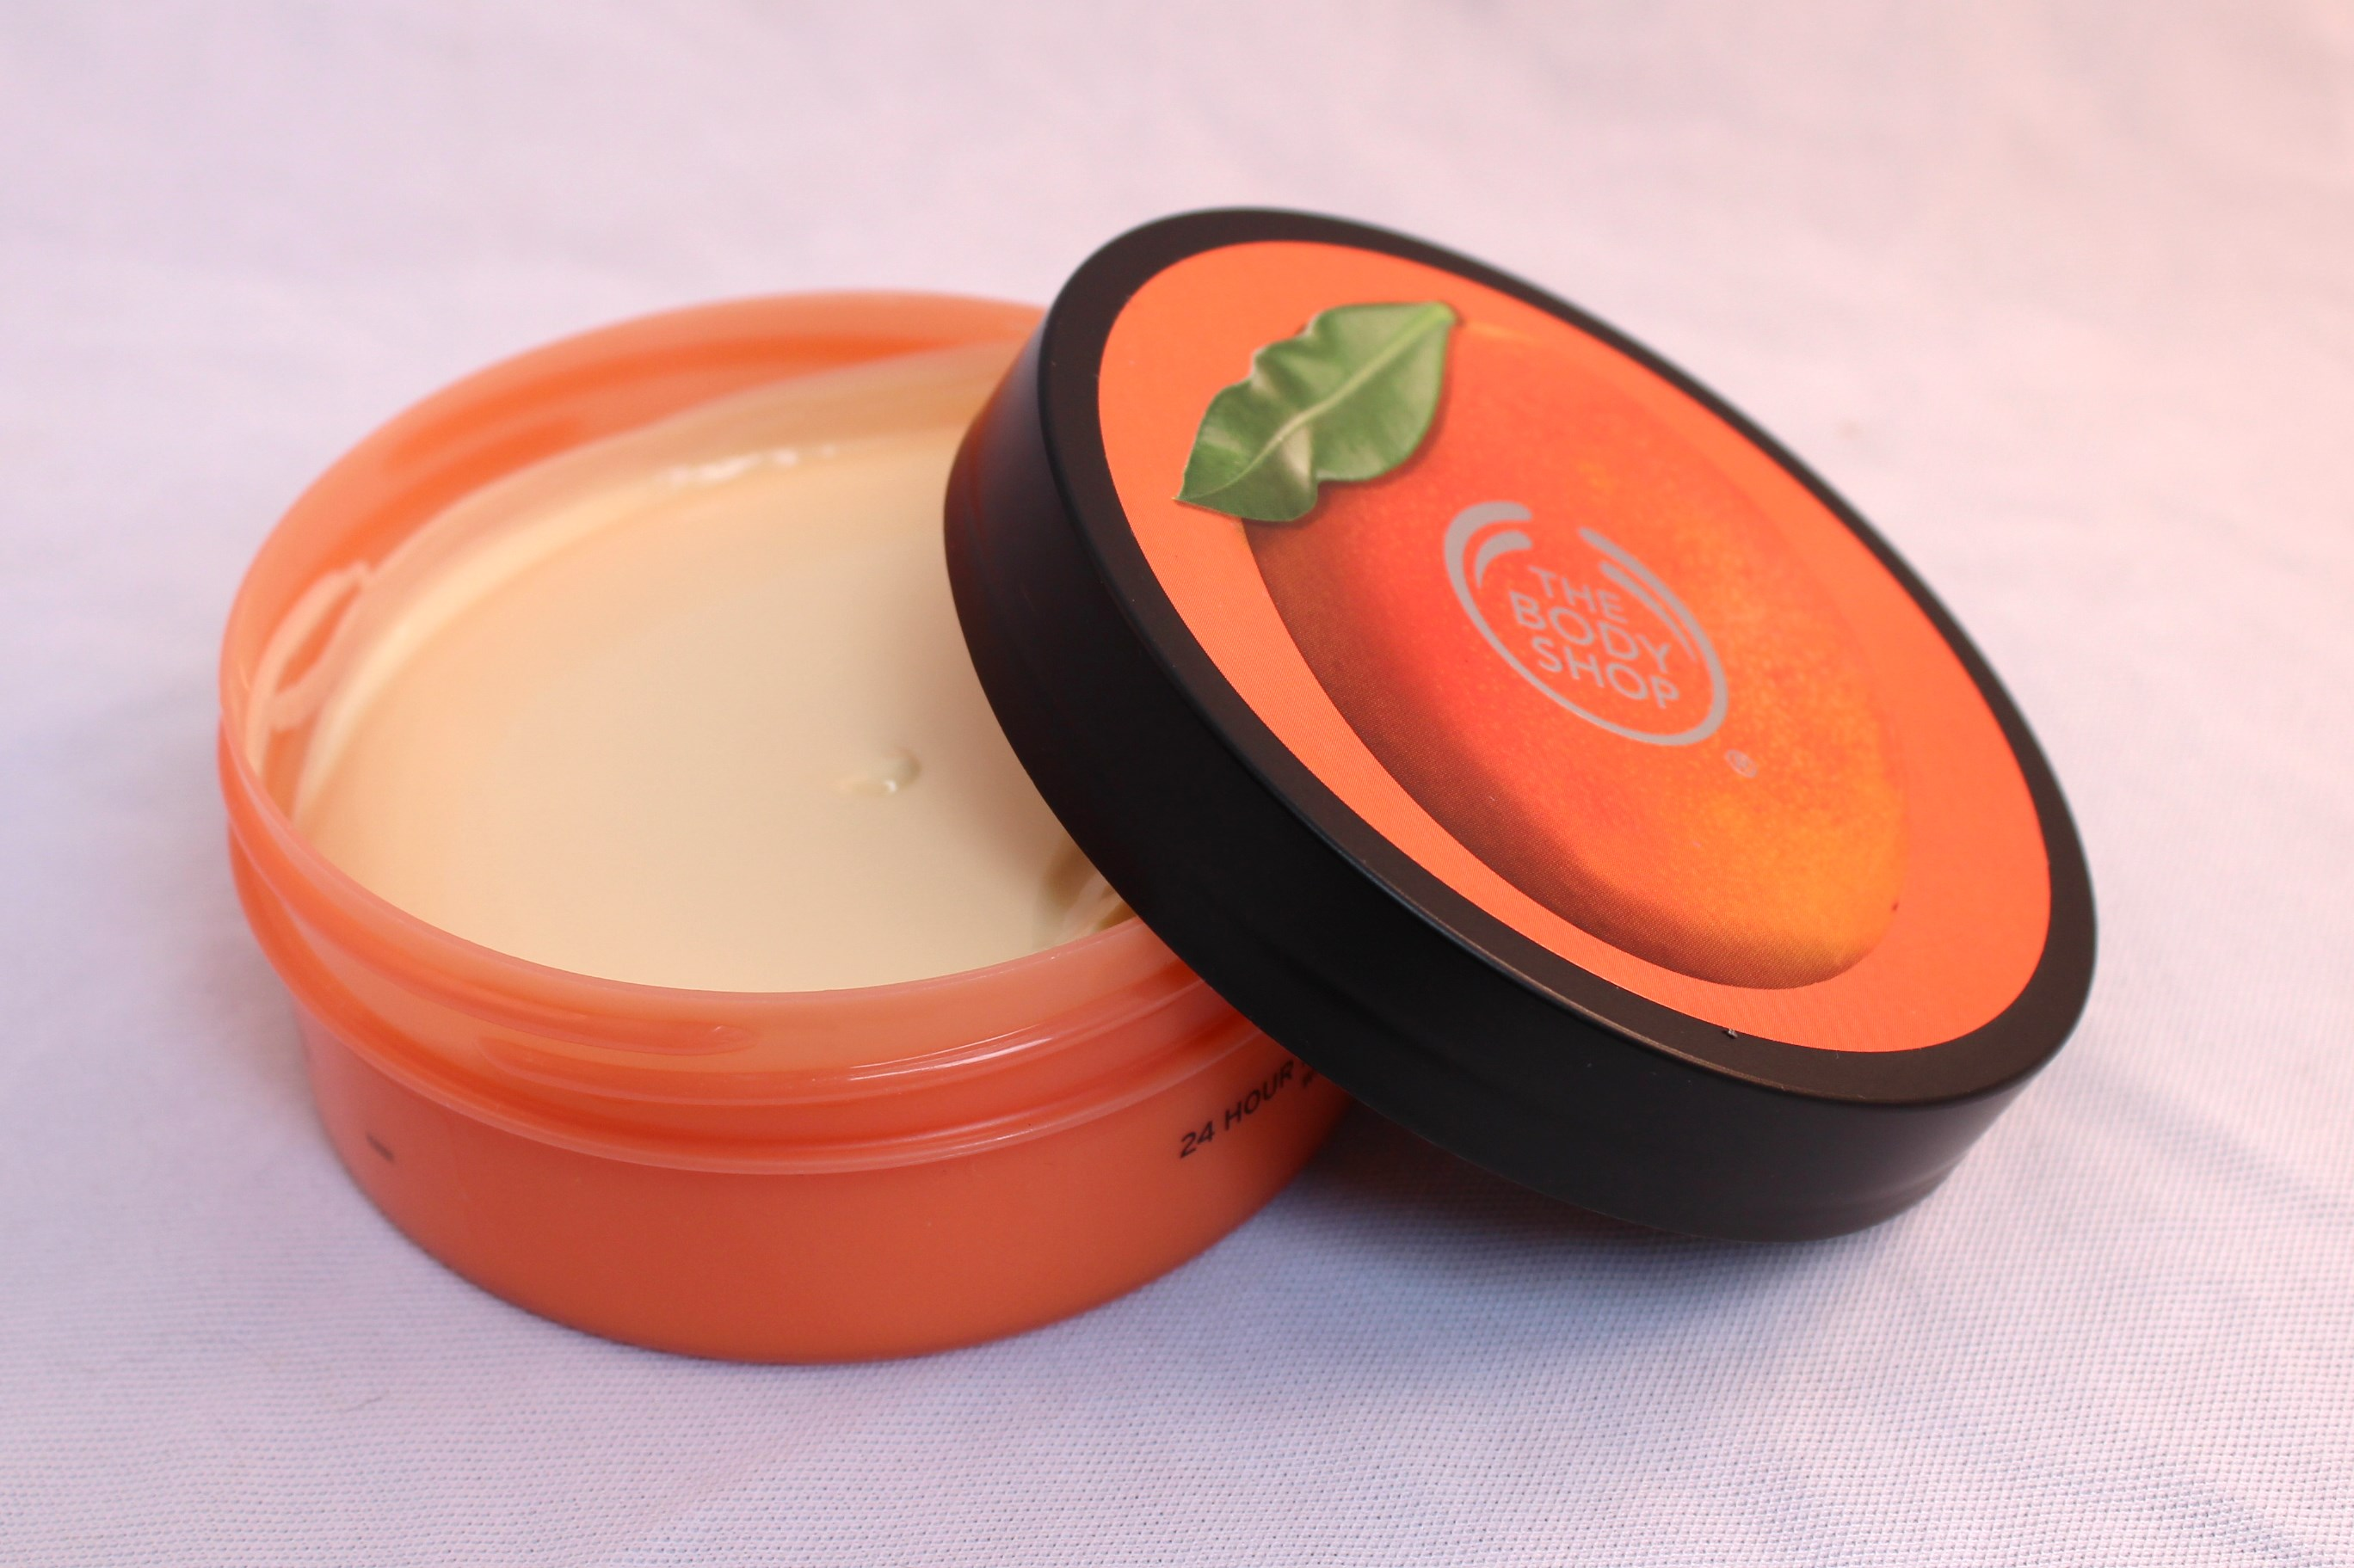 dau-duong-thebodyshop-mango-softening-body-butter-05